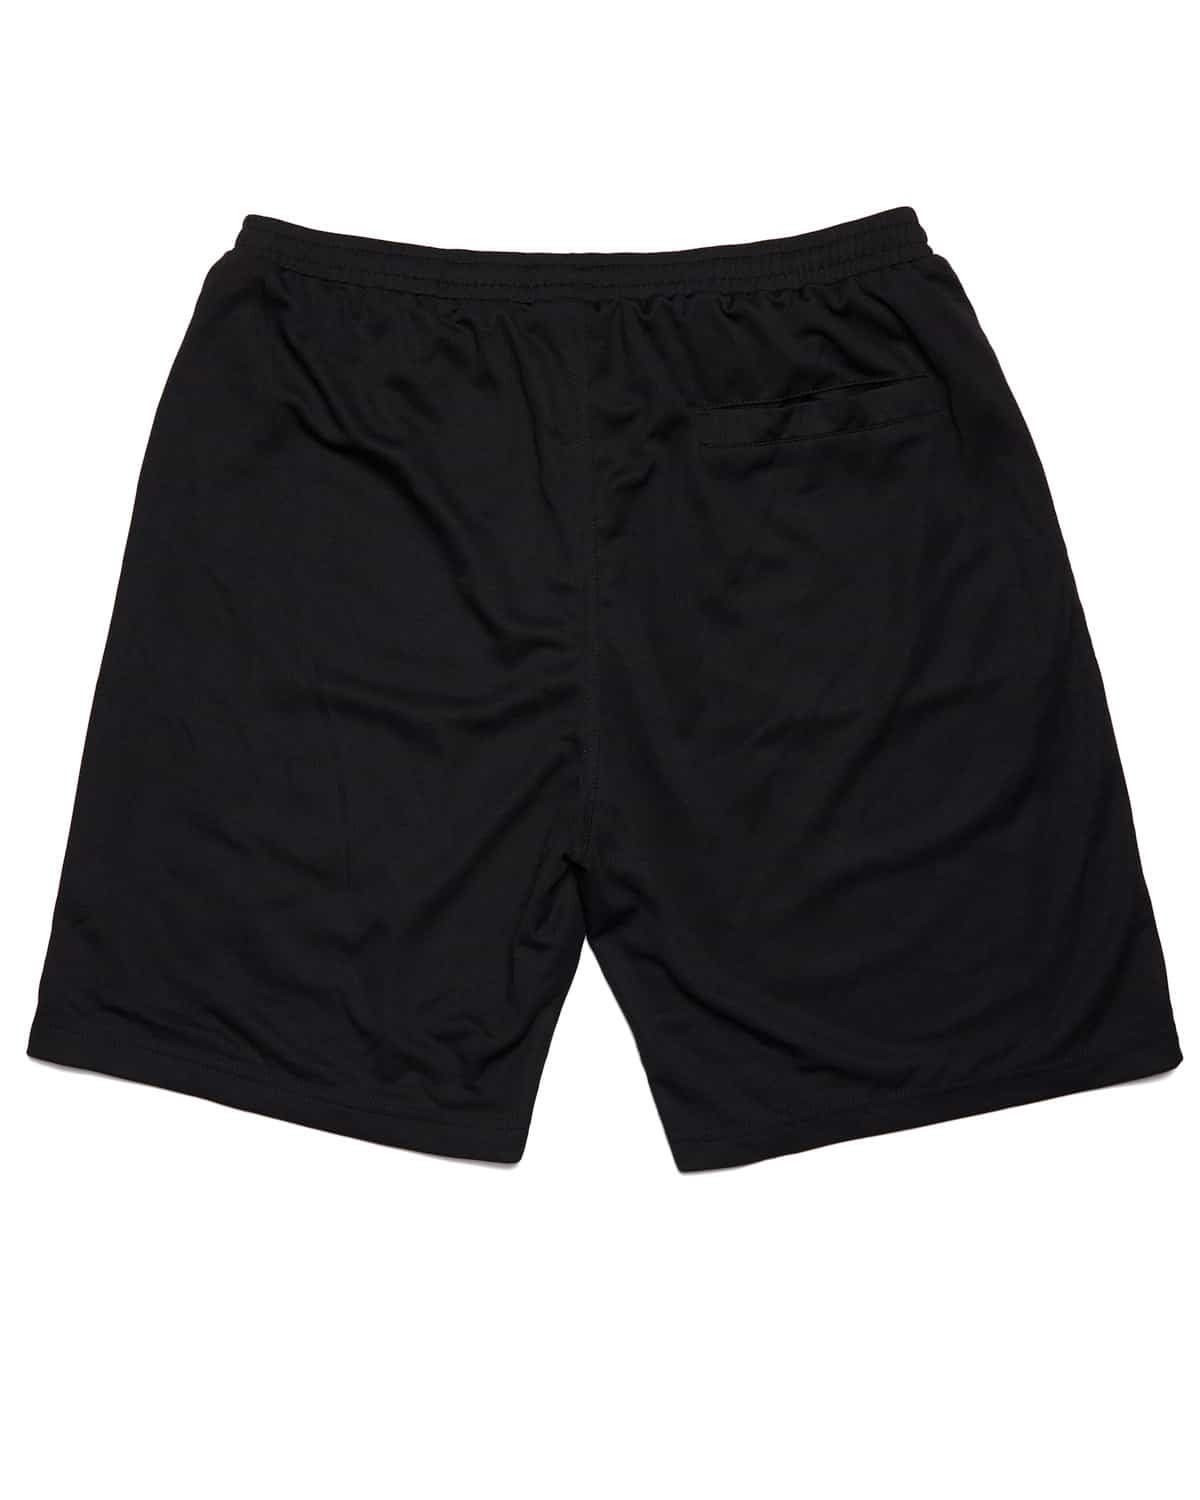 Excision Athletic Shorts